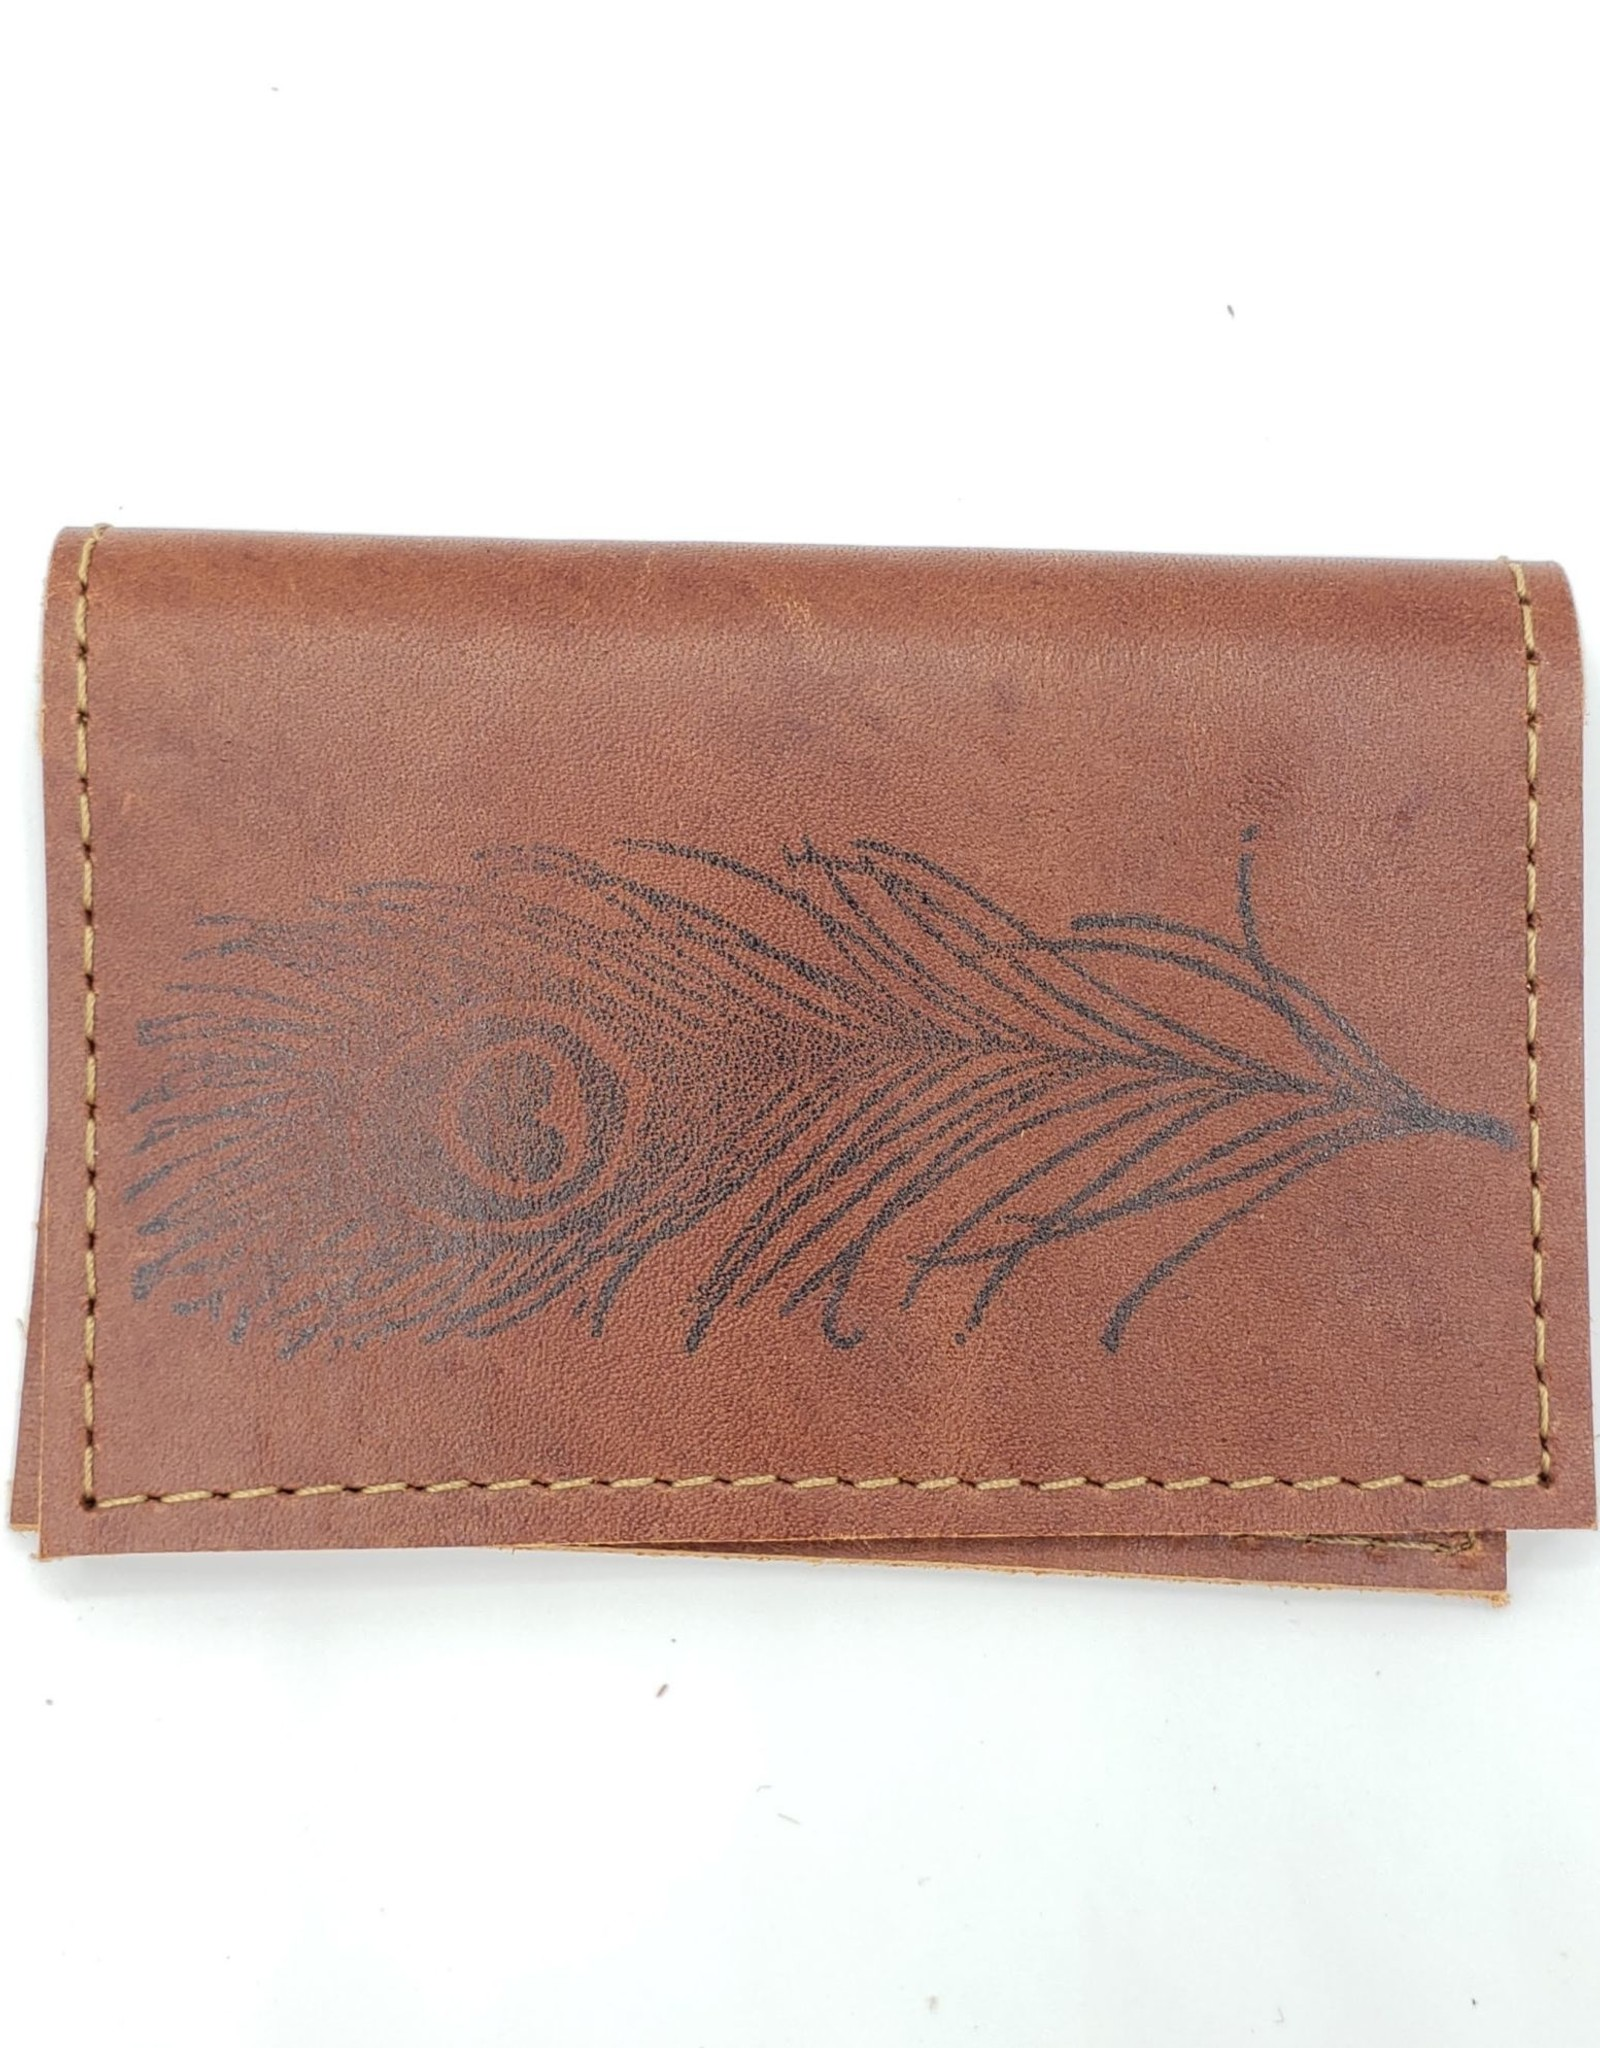 In Blue Handmade Peacock Feather - Leather Fold Over Card Wallet